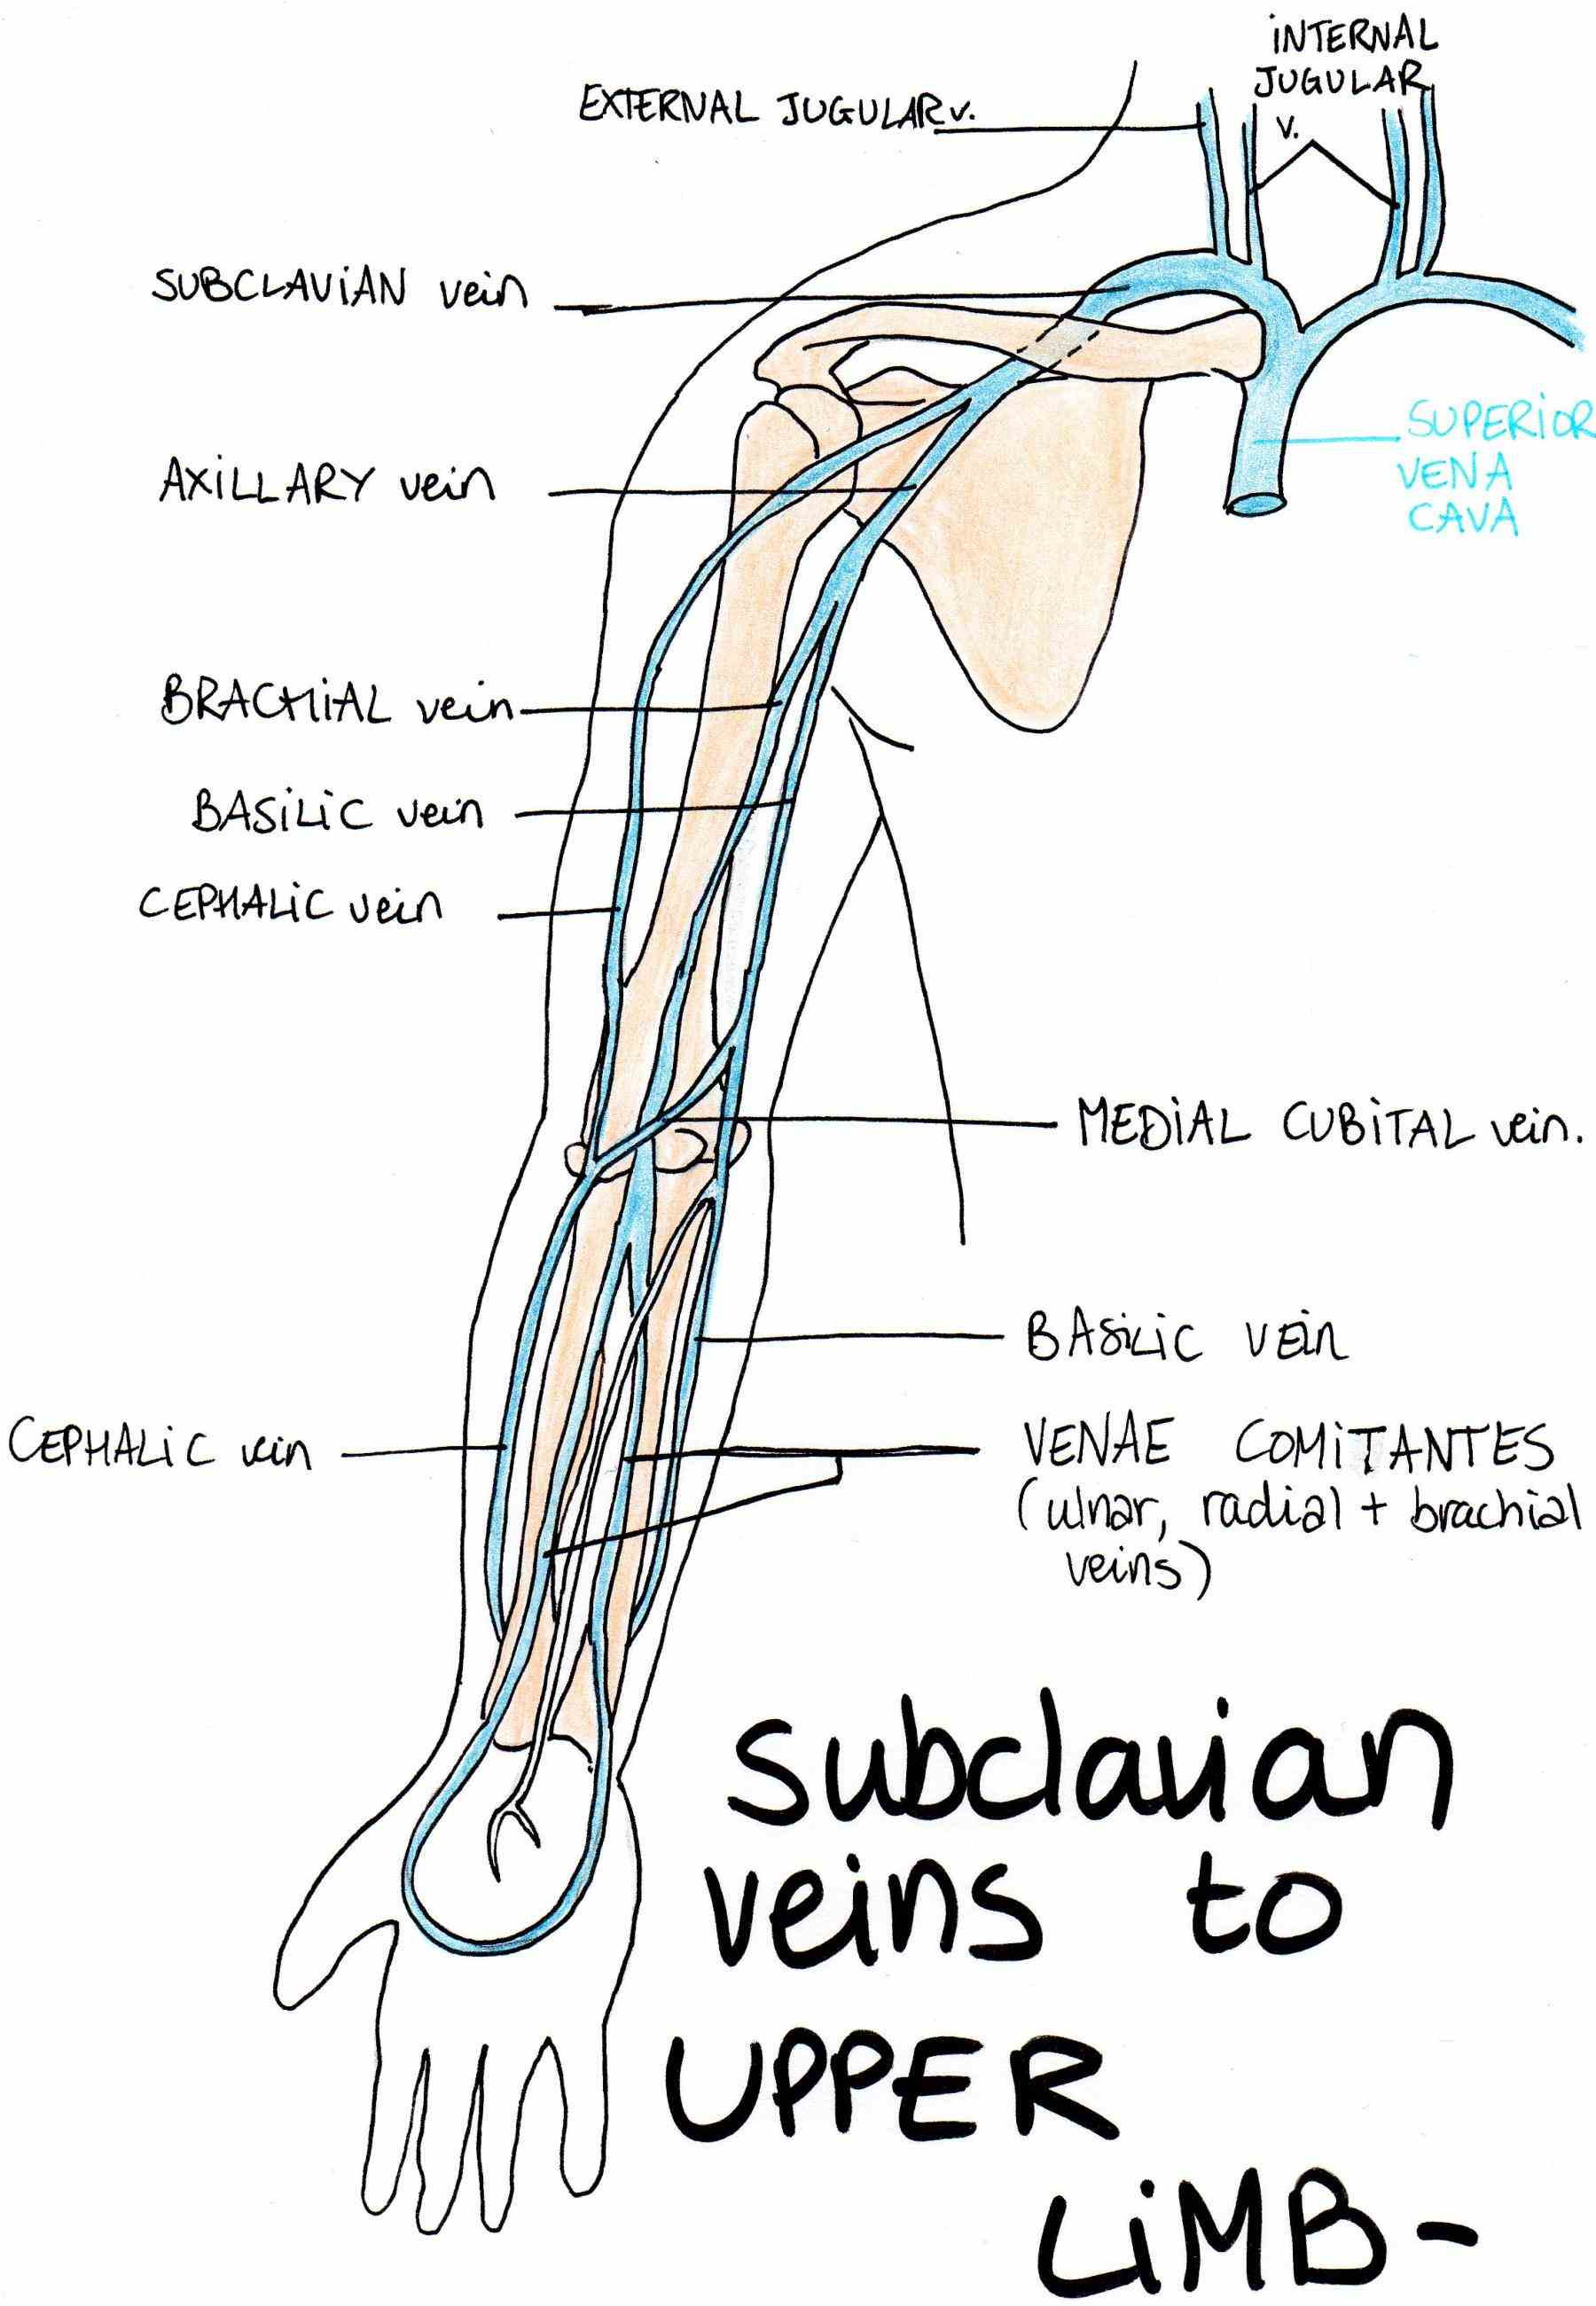 Upper limb vein anatomy